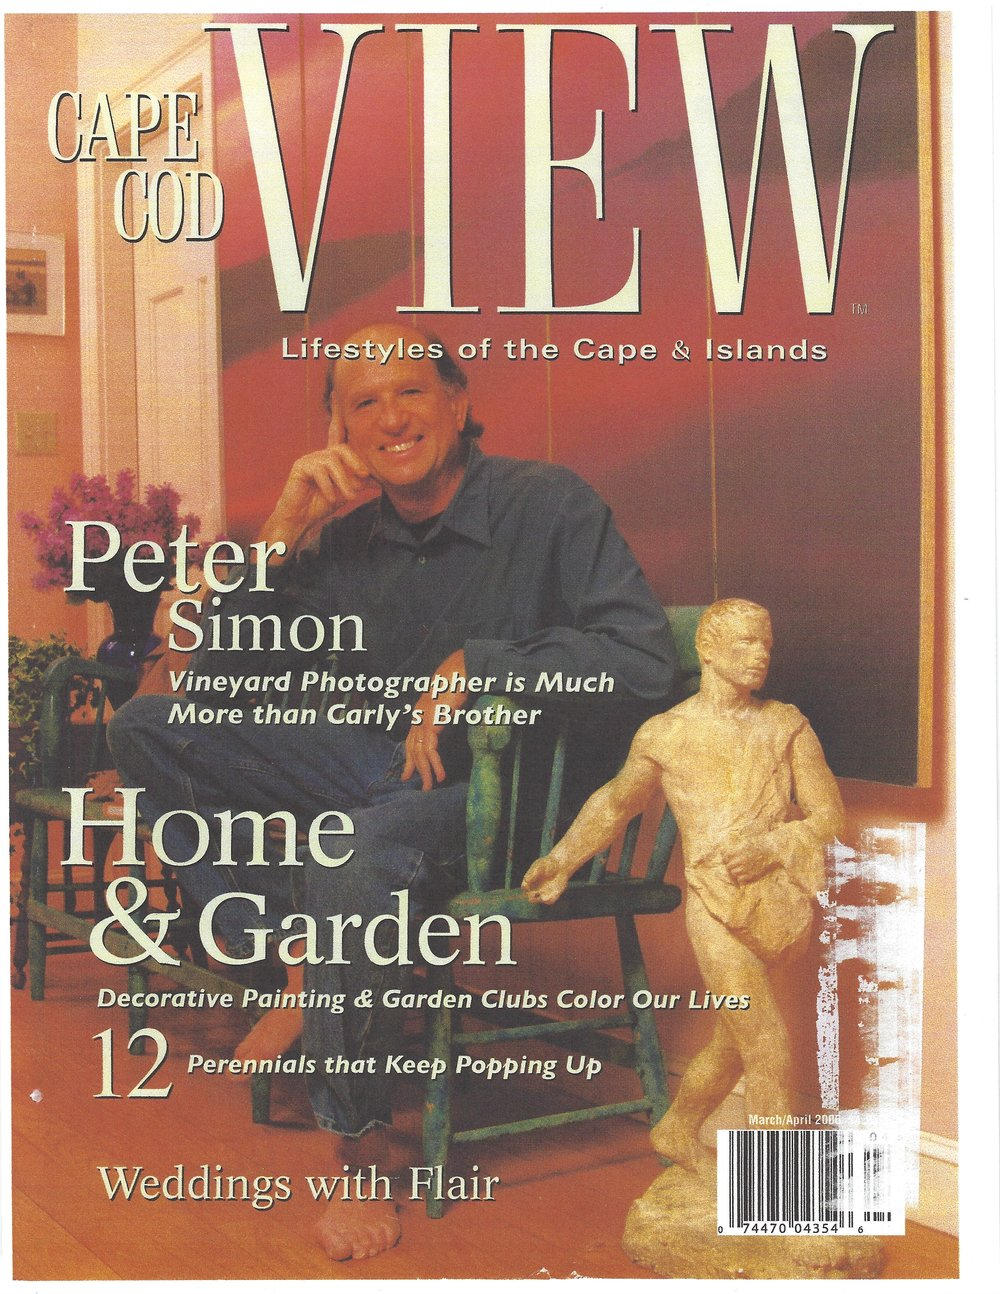 cape cod view mar 06 cover